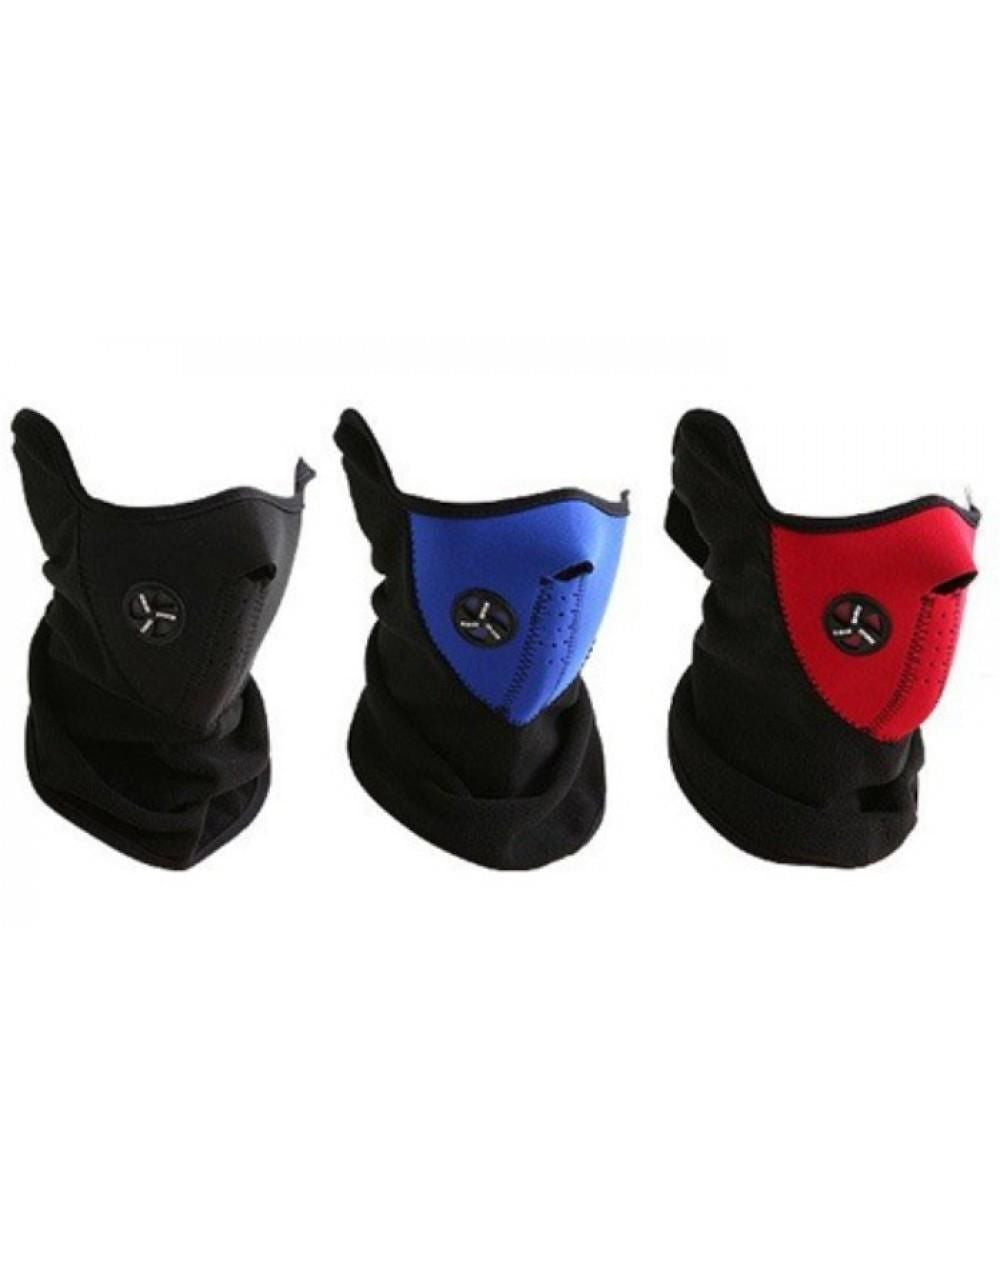 3 x NEOPRENE NECK WARMER HALF FACE MASK